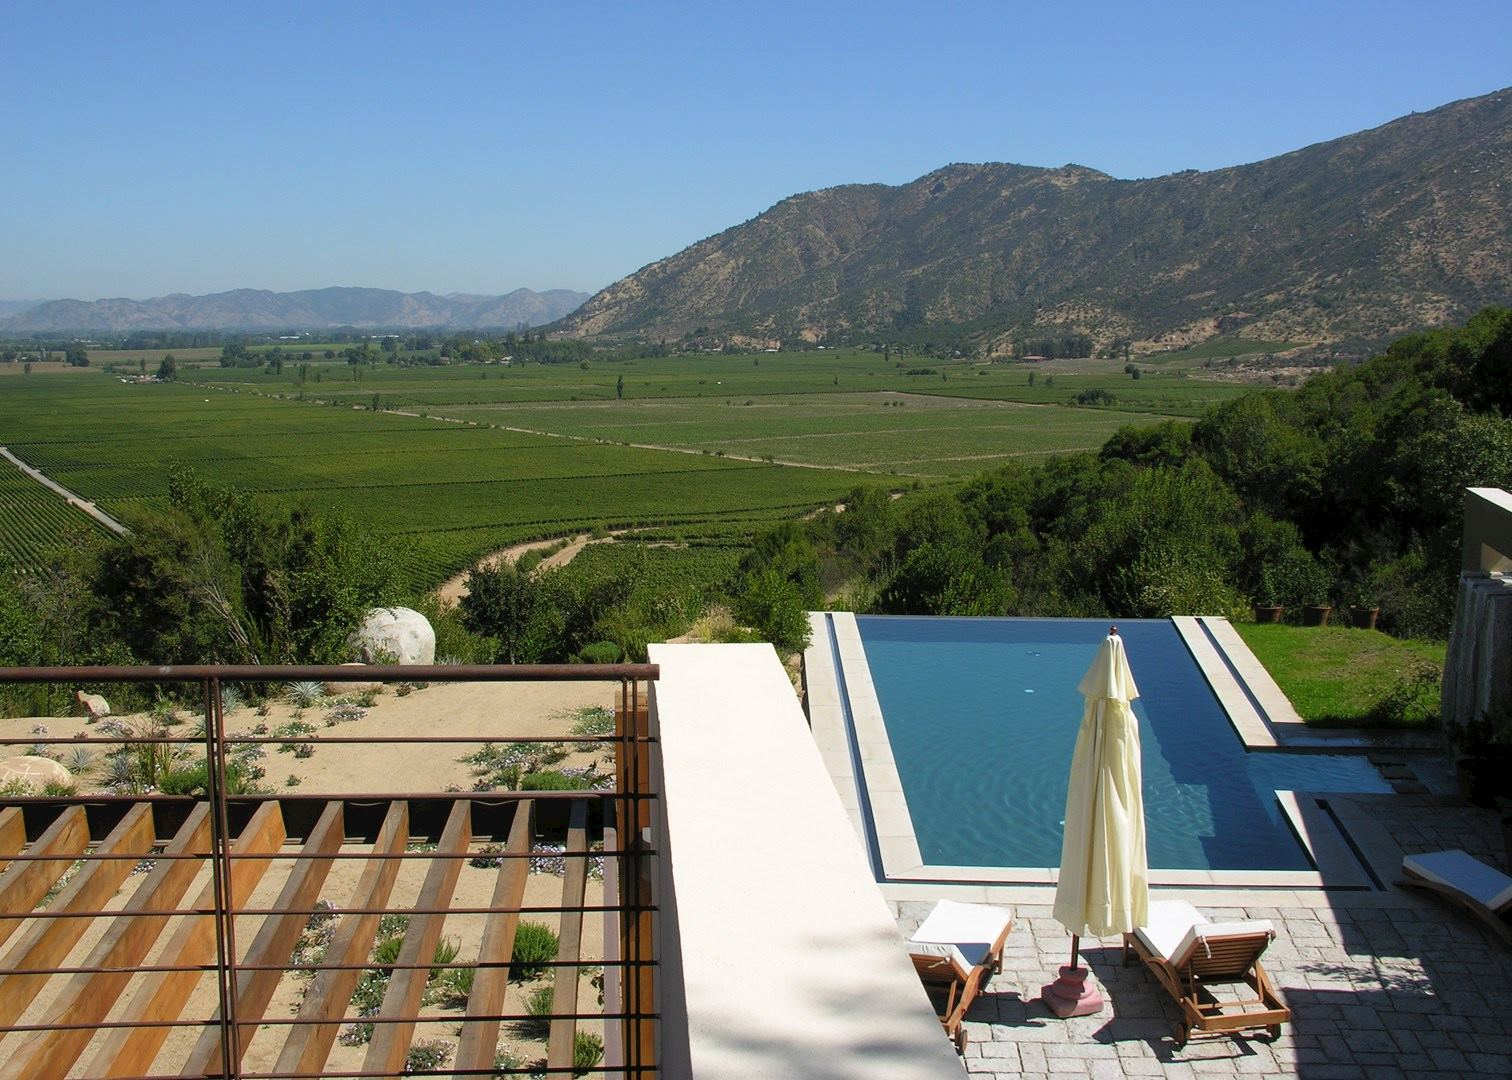 Casa lapostolle colchagua valley hotels audley travel for Casa lapostolle